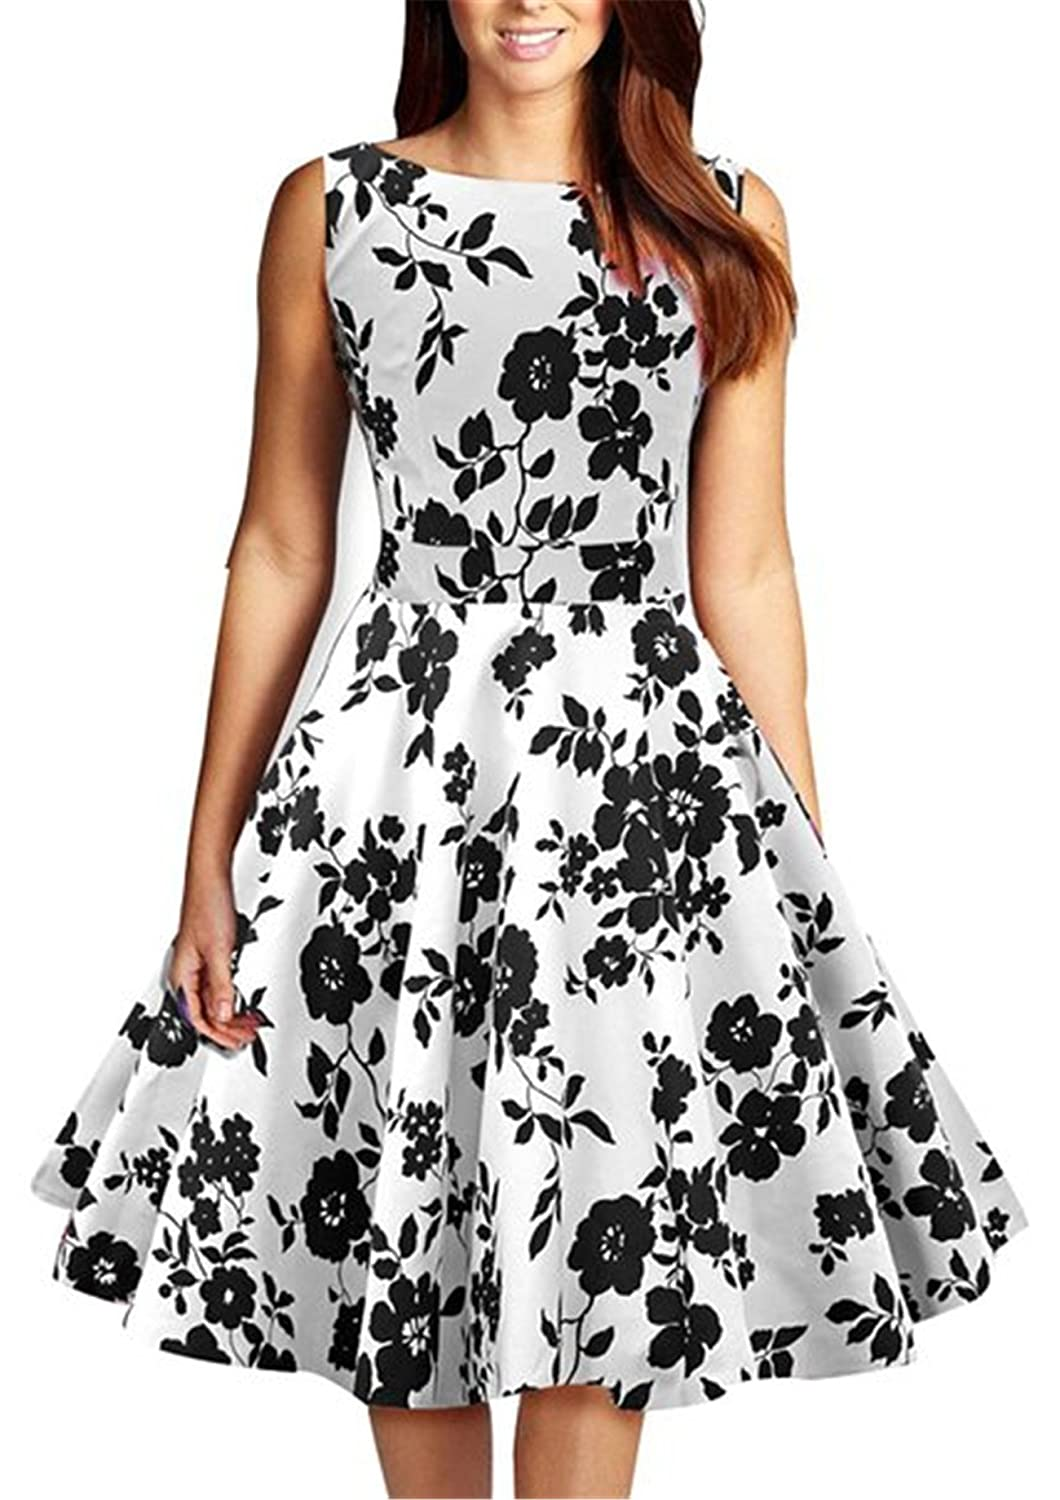 Tailloday Damen 50er Jahre Sommerkleid Ärmellos Vintage Serenity Kleid mit Rockabilly Swing Dress